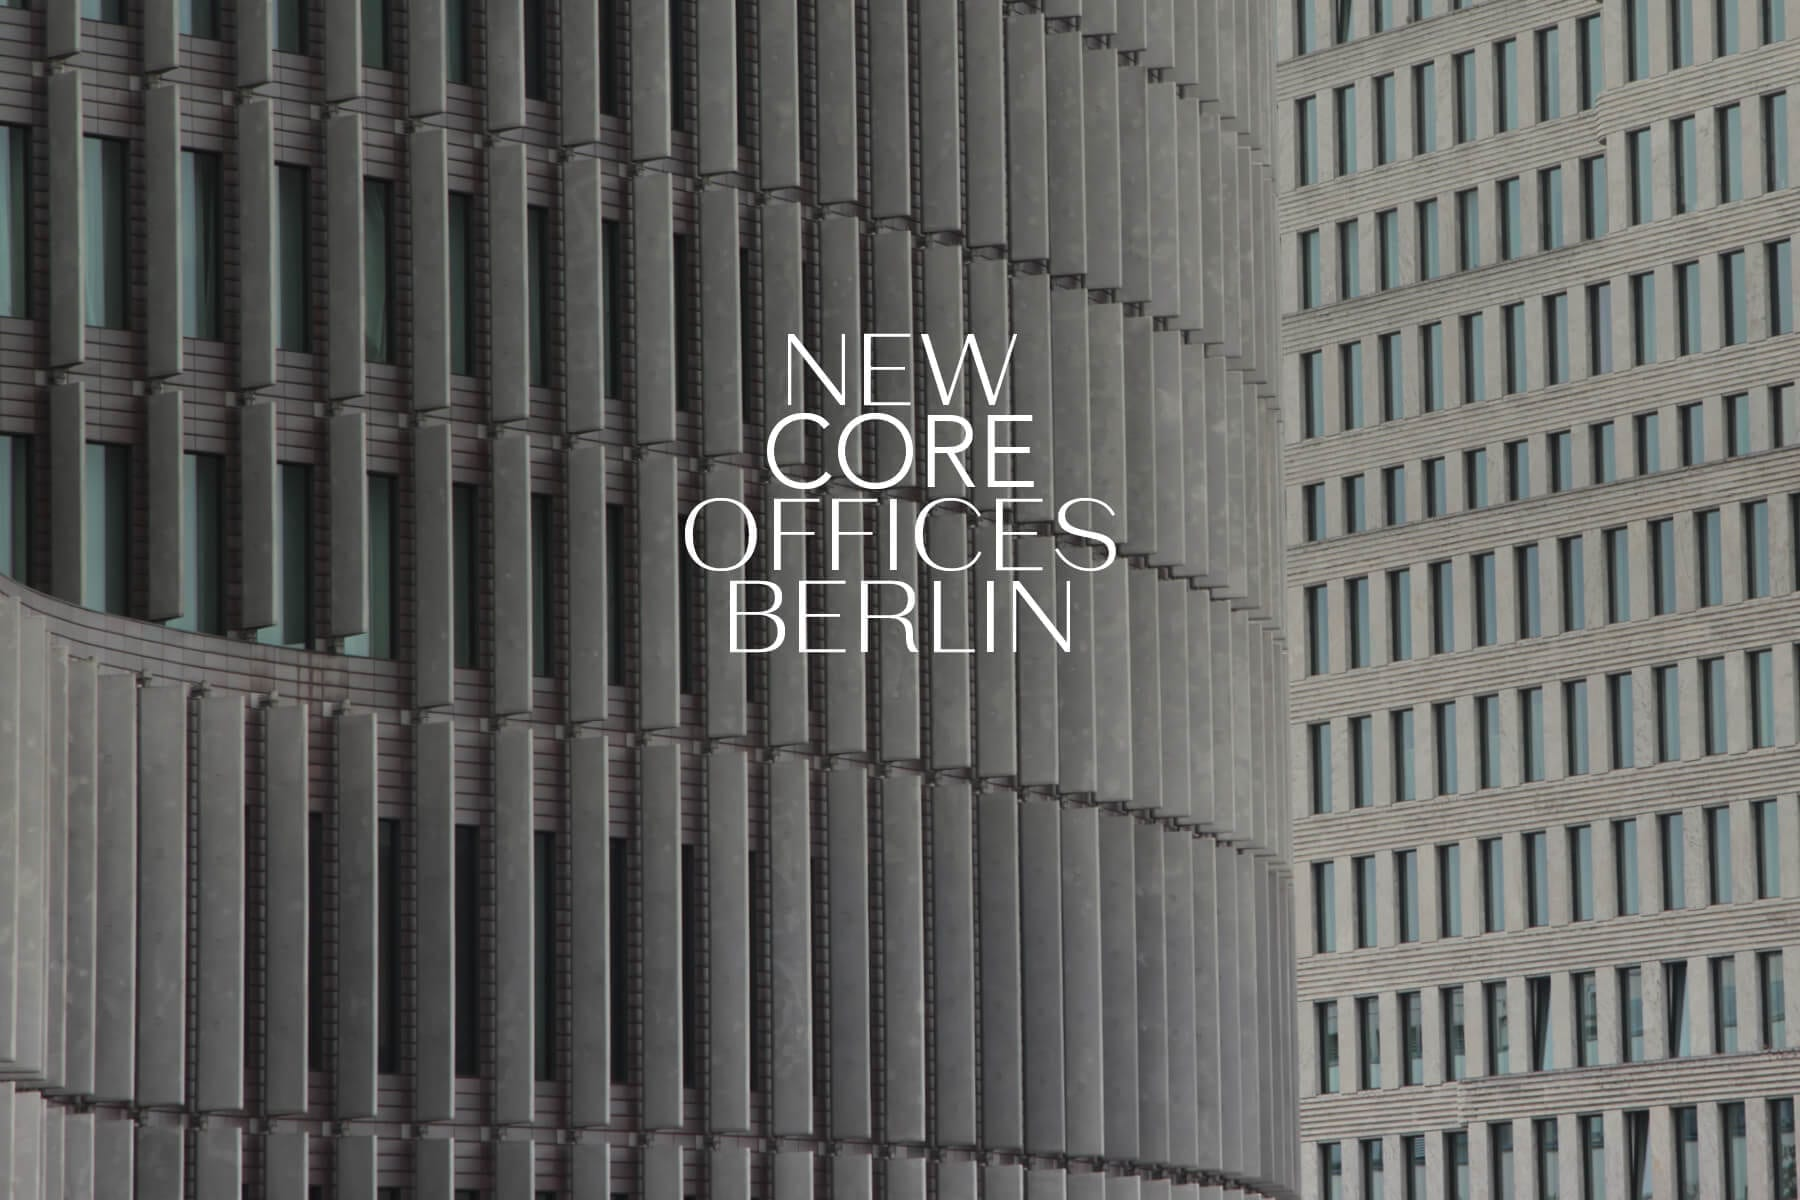 New Core Offices Berlin